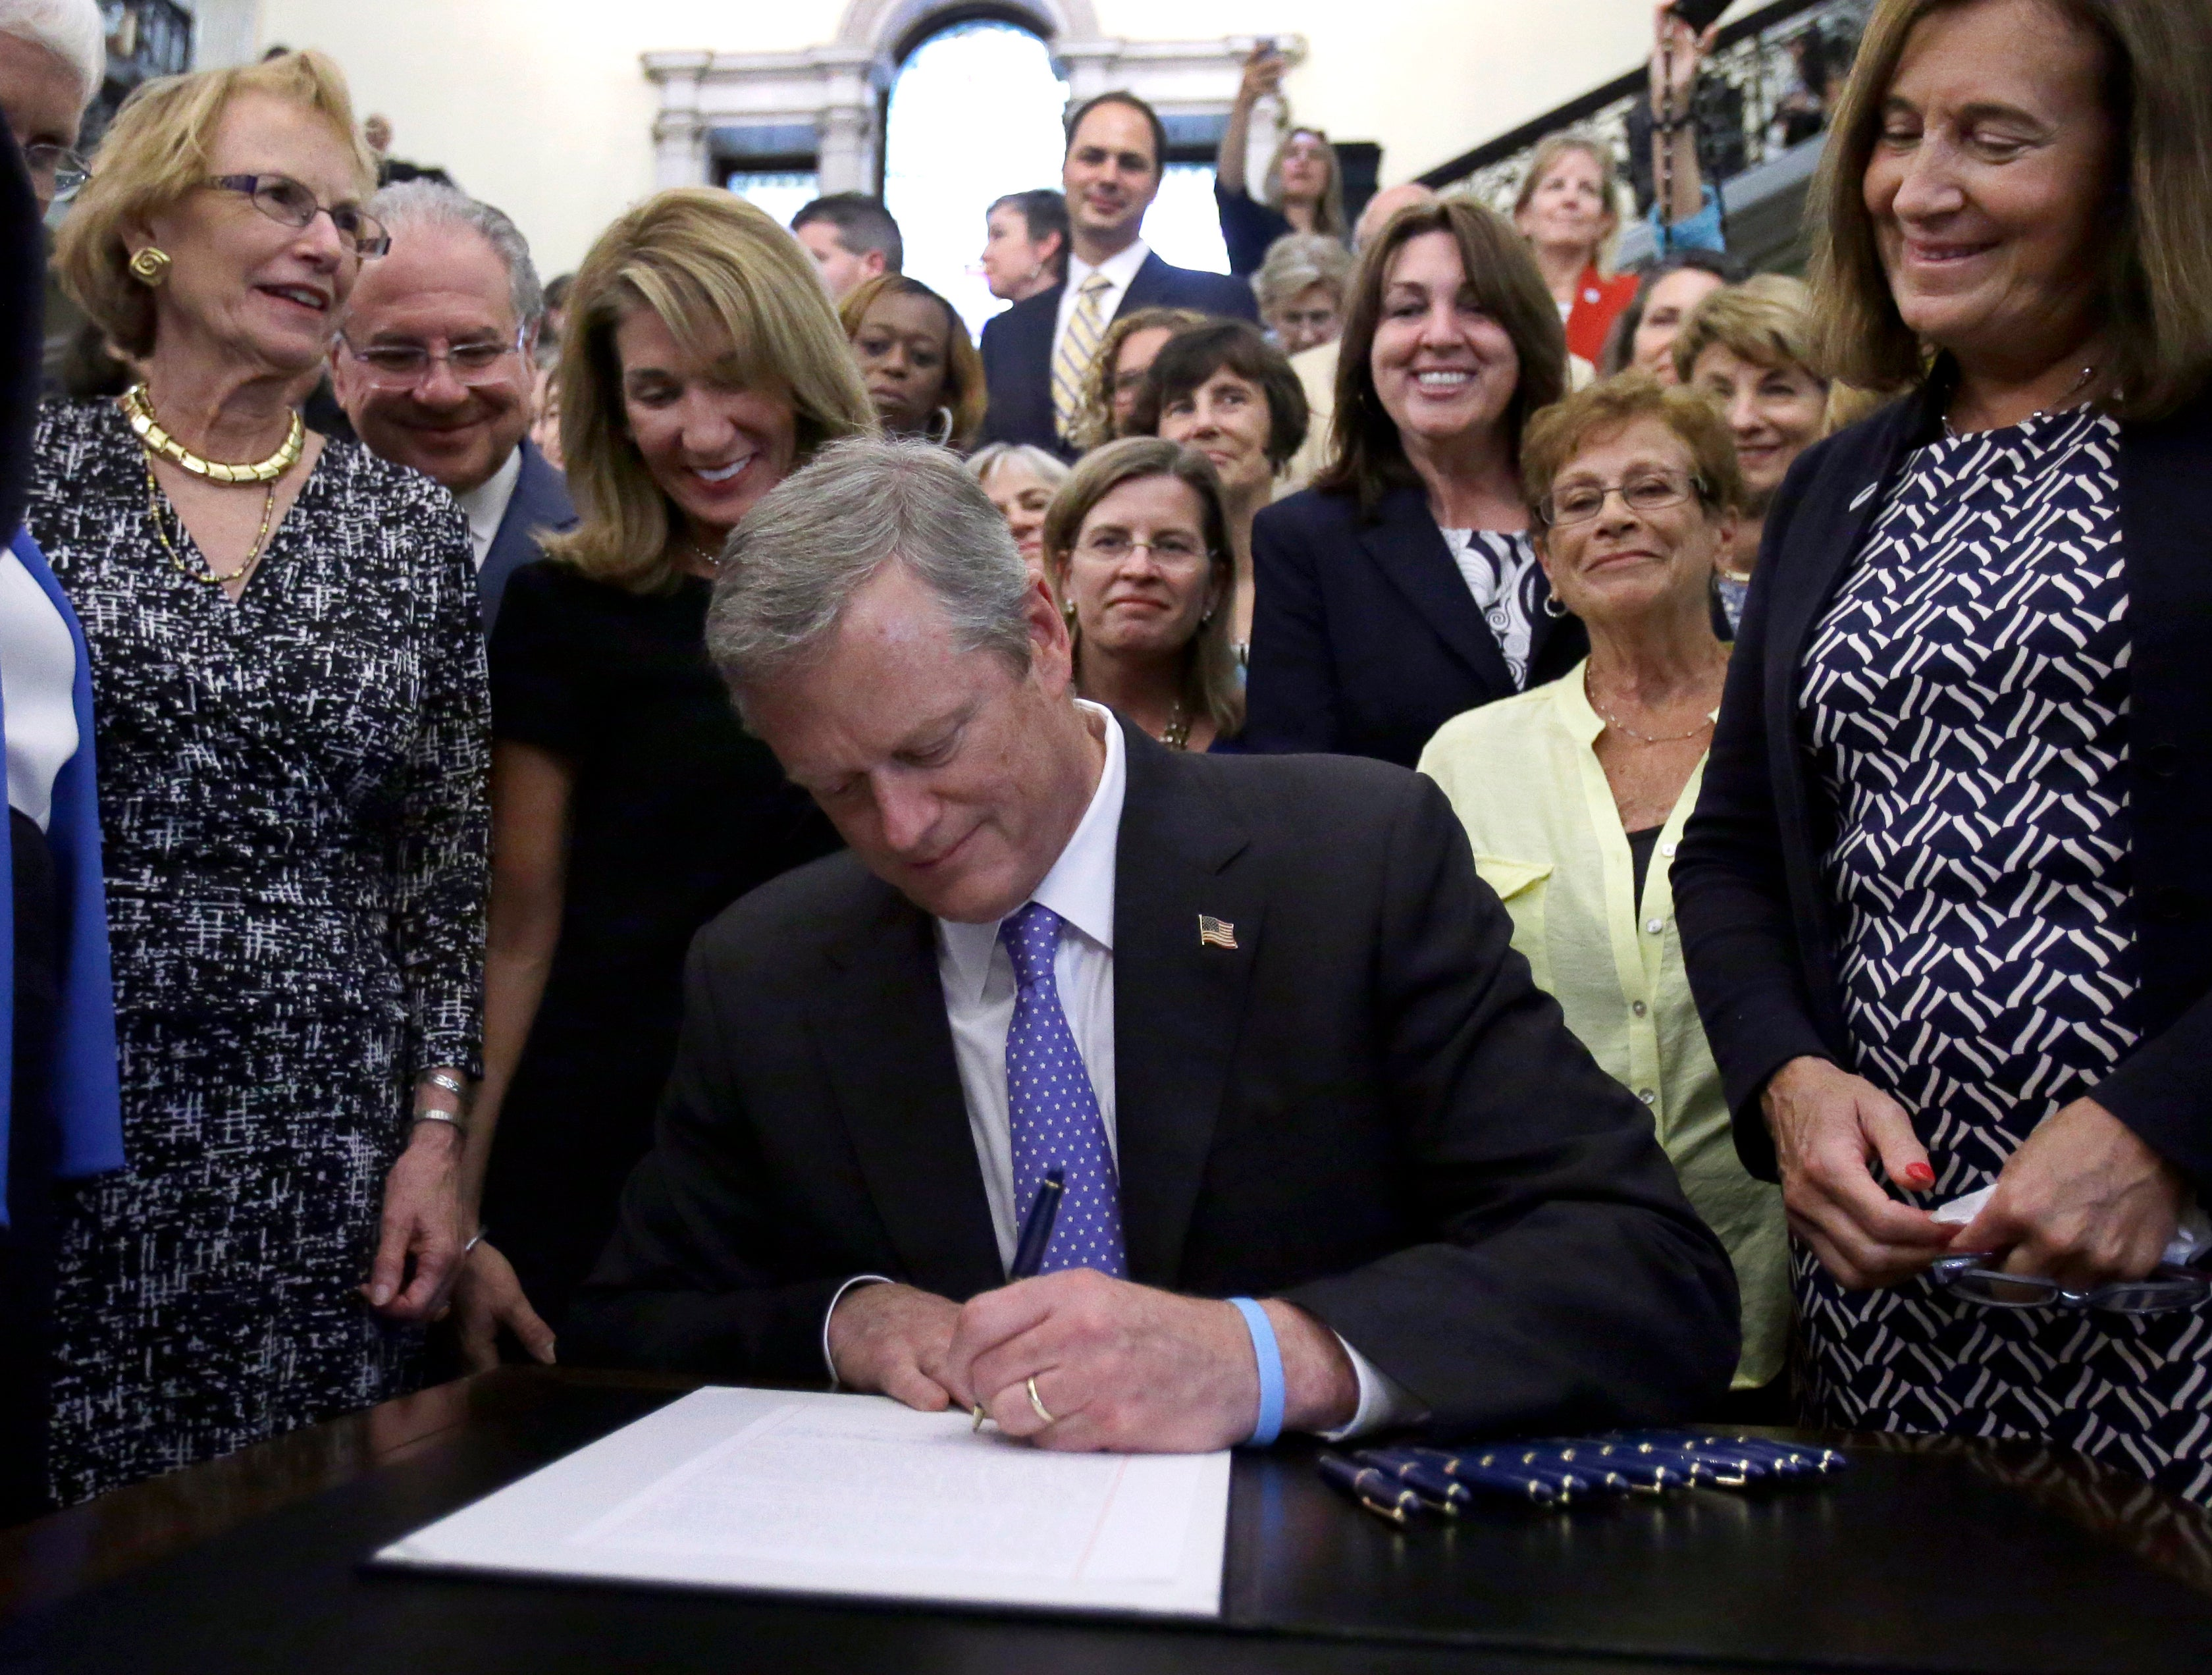 Supporters watch as Massachusetts Gov. Charlie Baker signs a bill into law at the Statehouse, Monday, Aug. 1, 2016, in Boston. The law requires comparable pay for men and women in Massachusetts. (AP Photo/Elise Amendola)